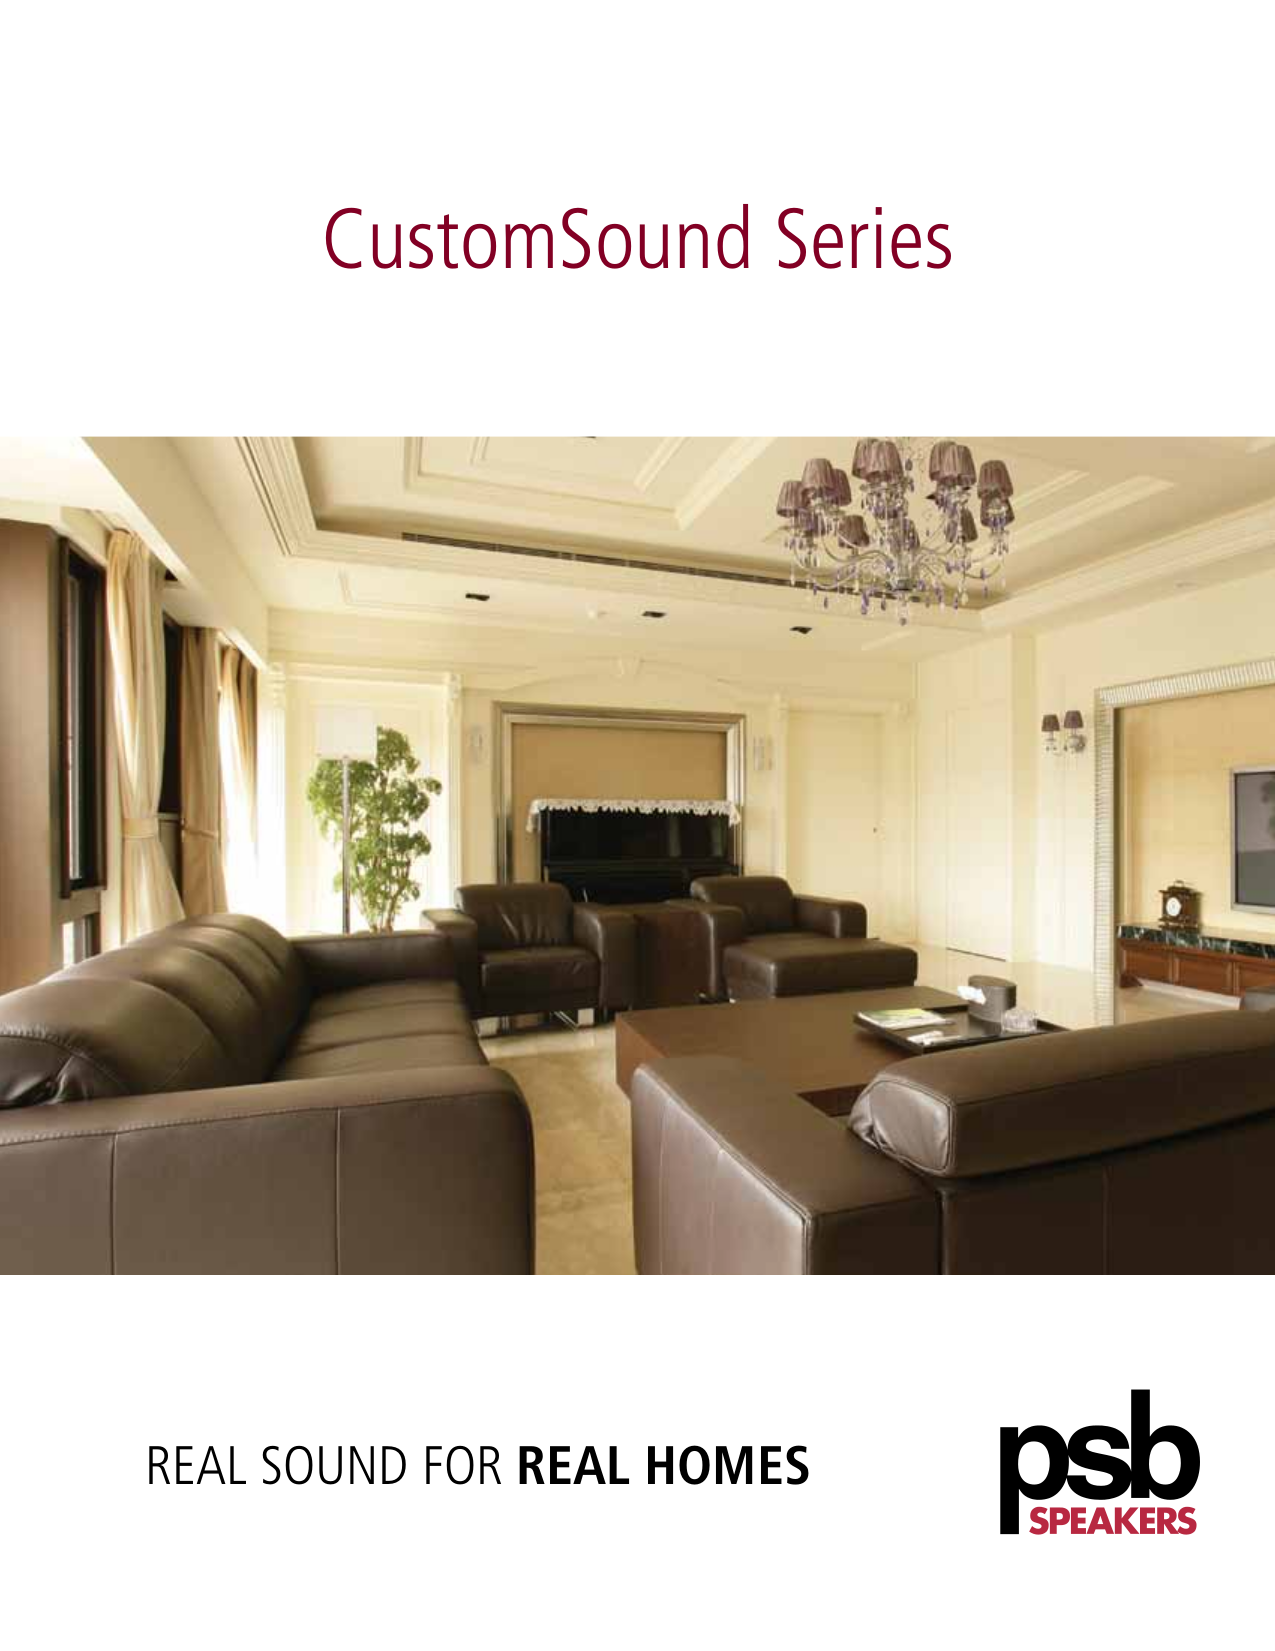 pdf for PSB Speaker System CustomSound CW383 manual